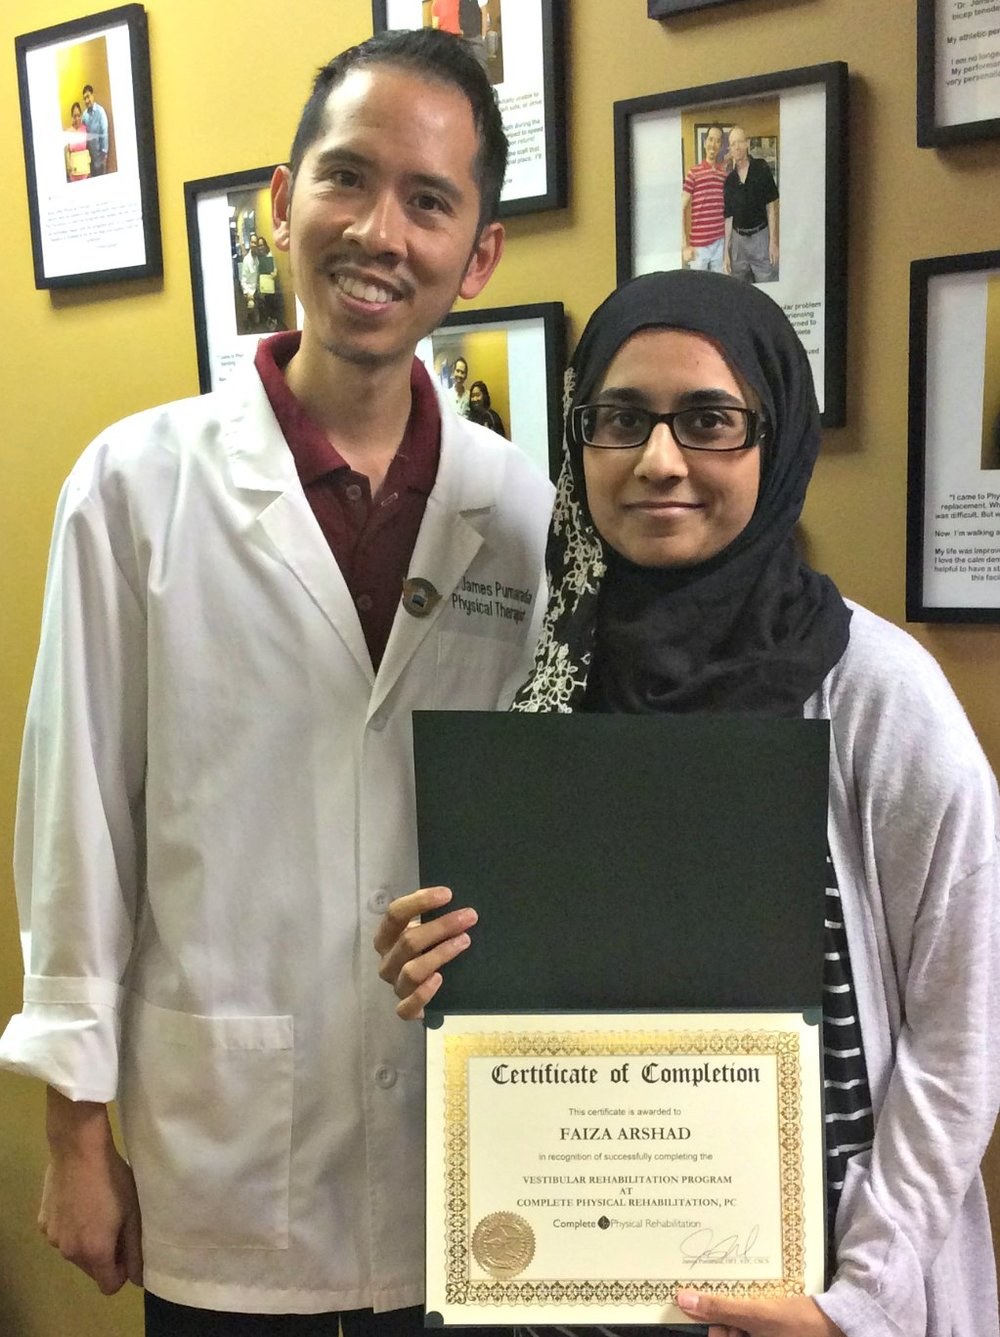 Jersey City Physical Therapy specialist Dr. James Pumarada with Faiza